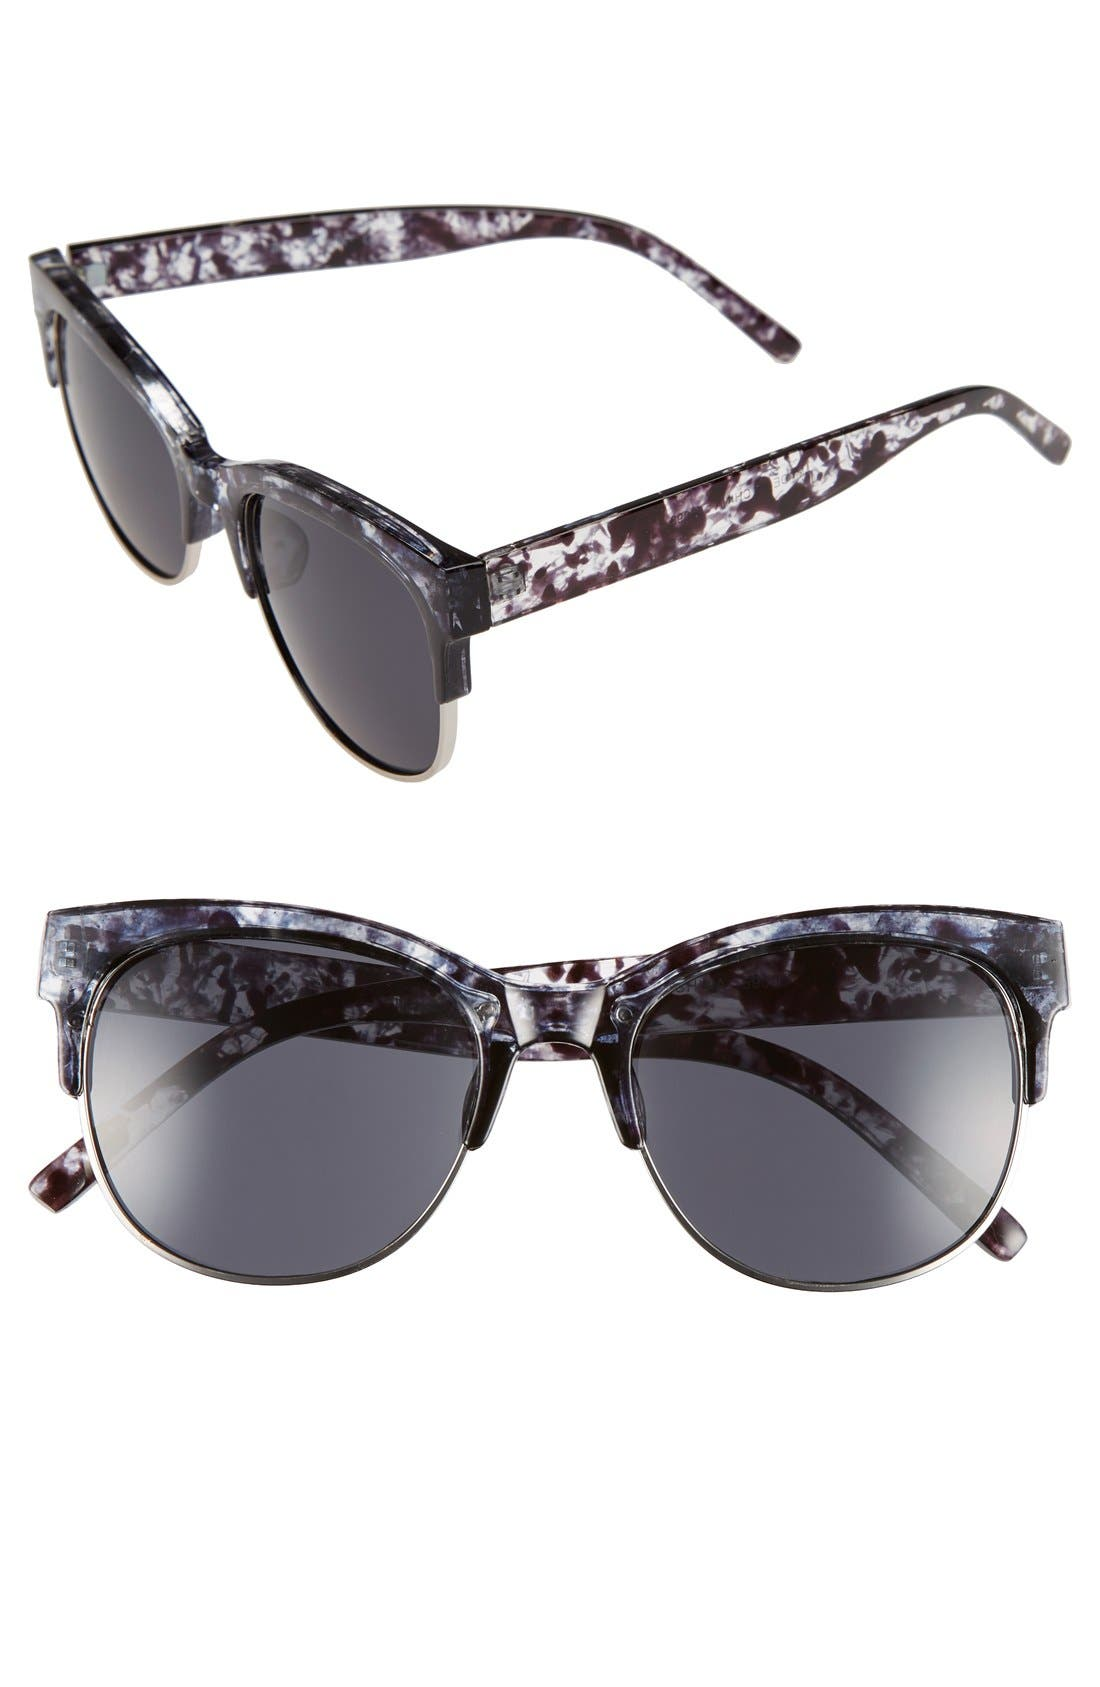 Main Image - A.J. Morgan 54mm Sunglasses